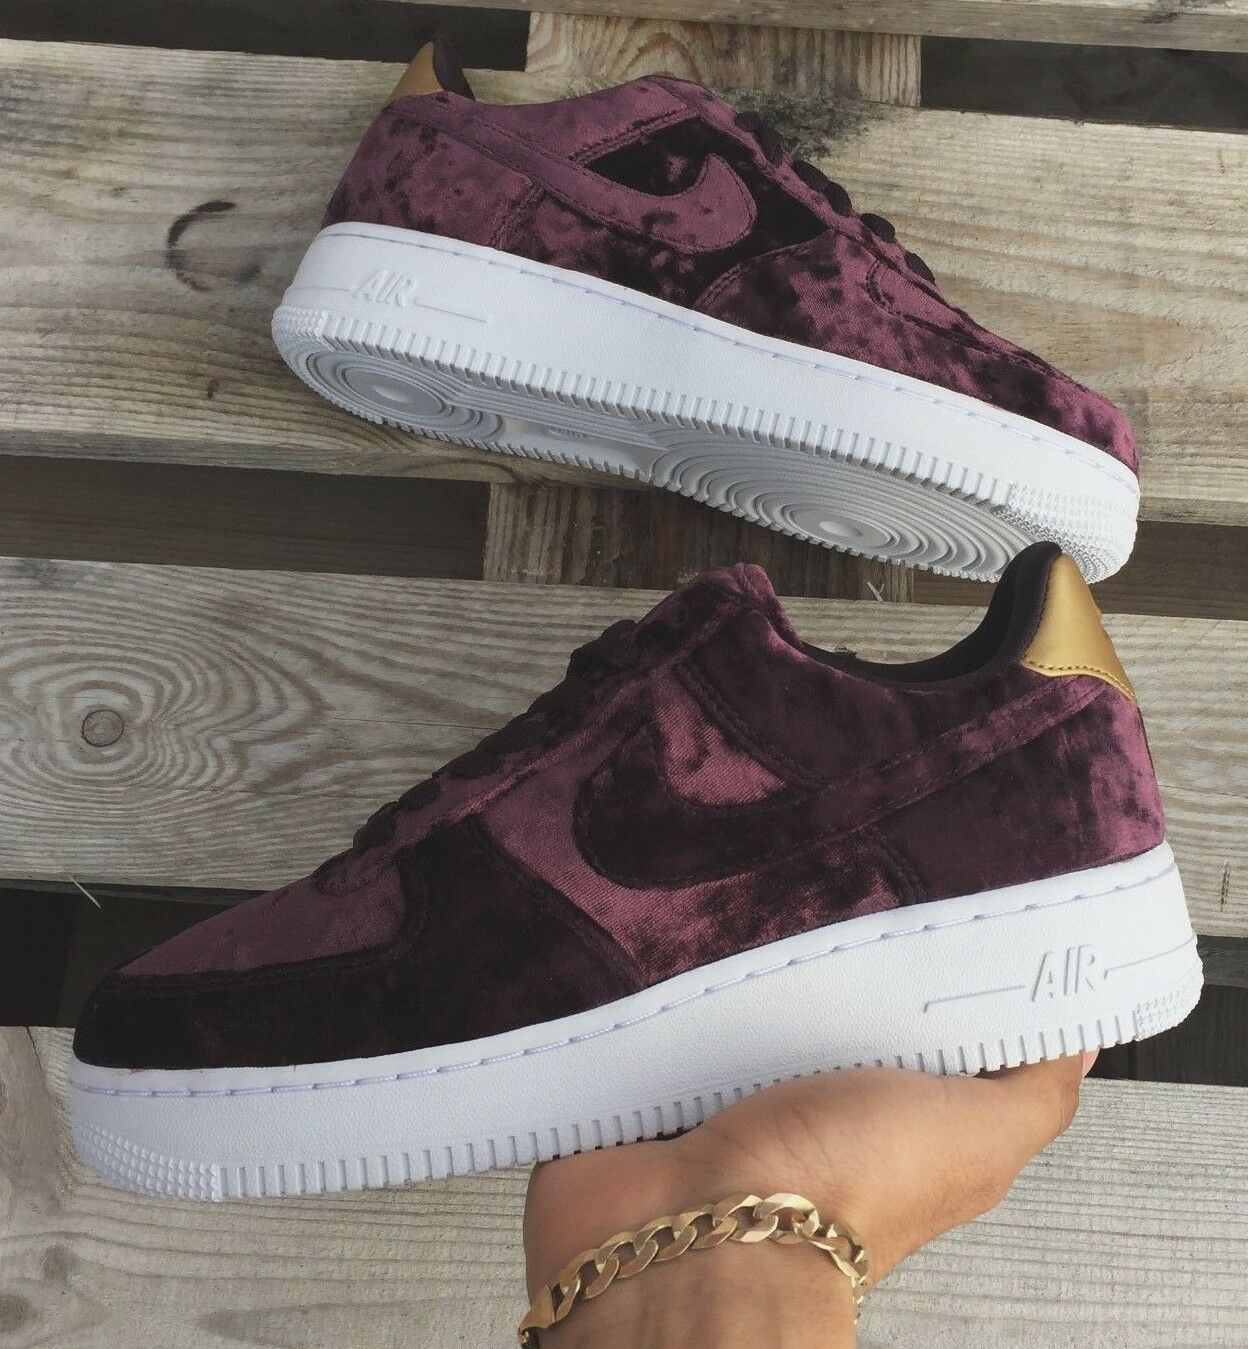 Nike air force 1 bassa borgogna premio velvet